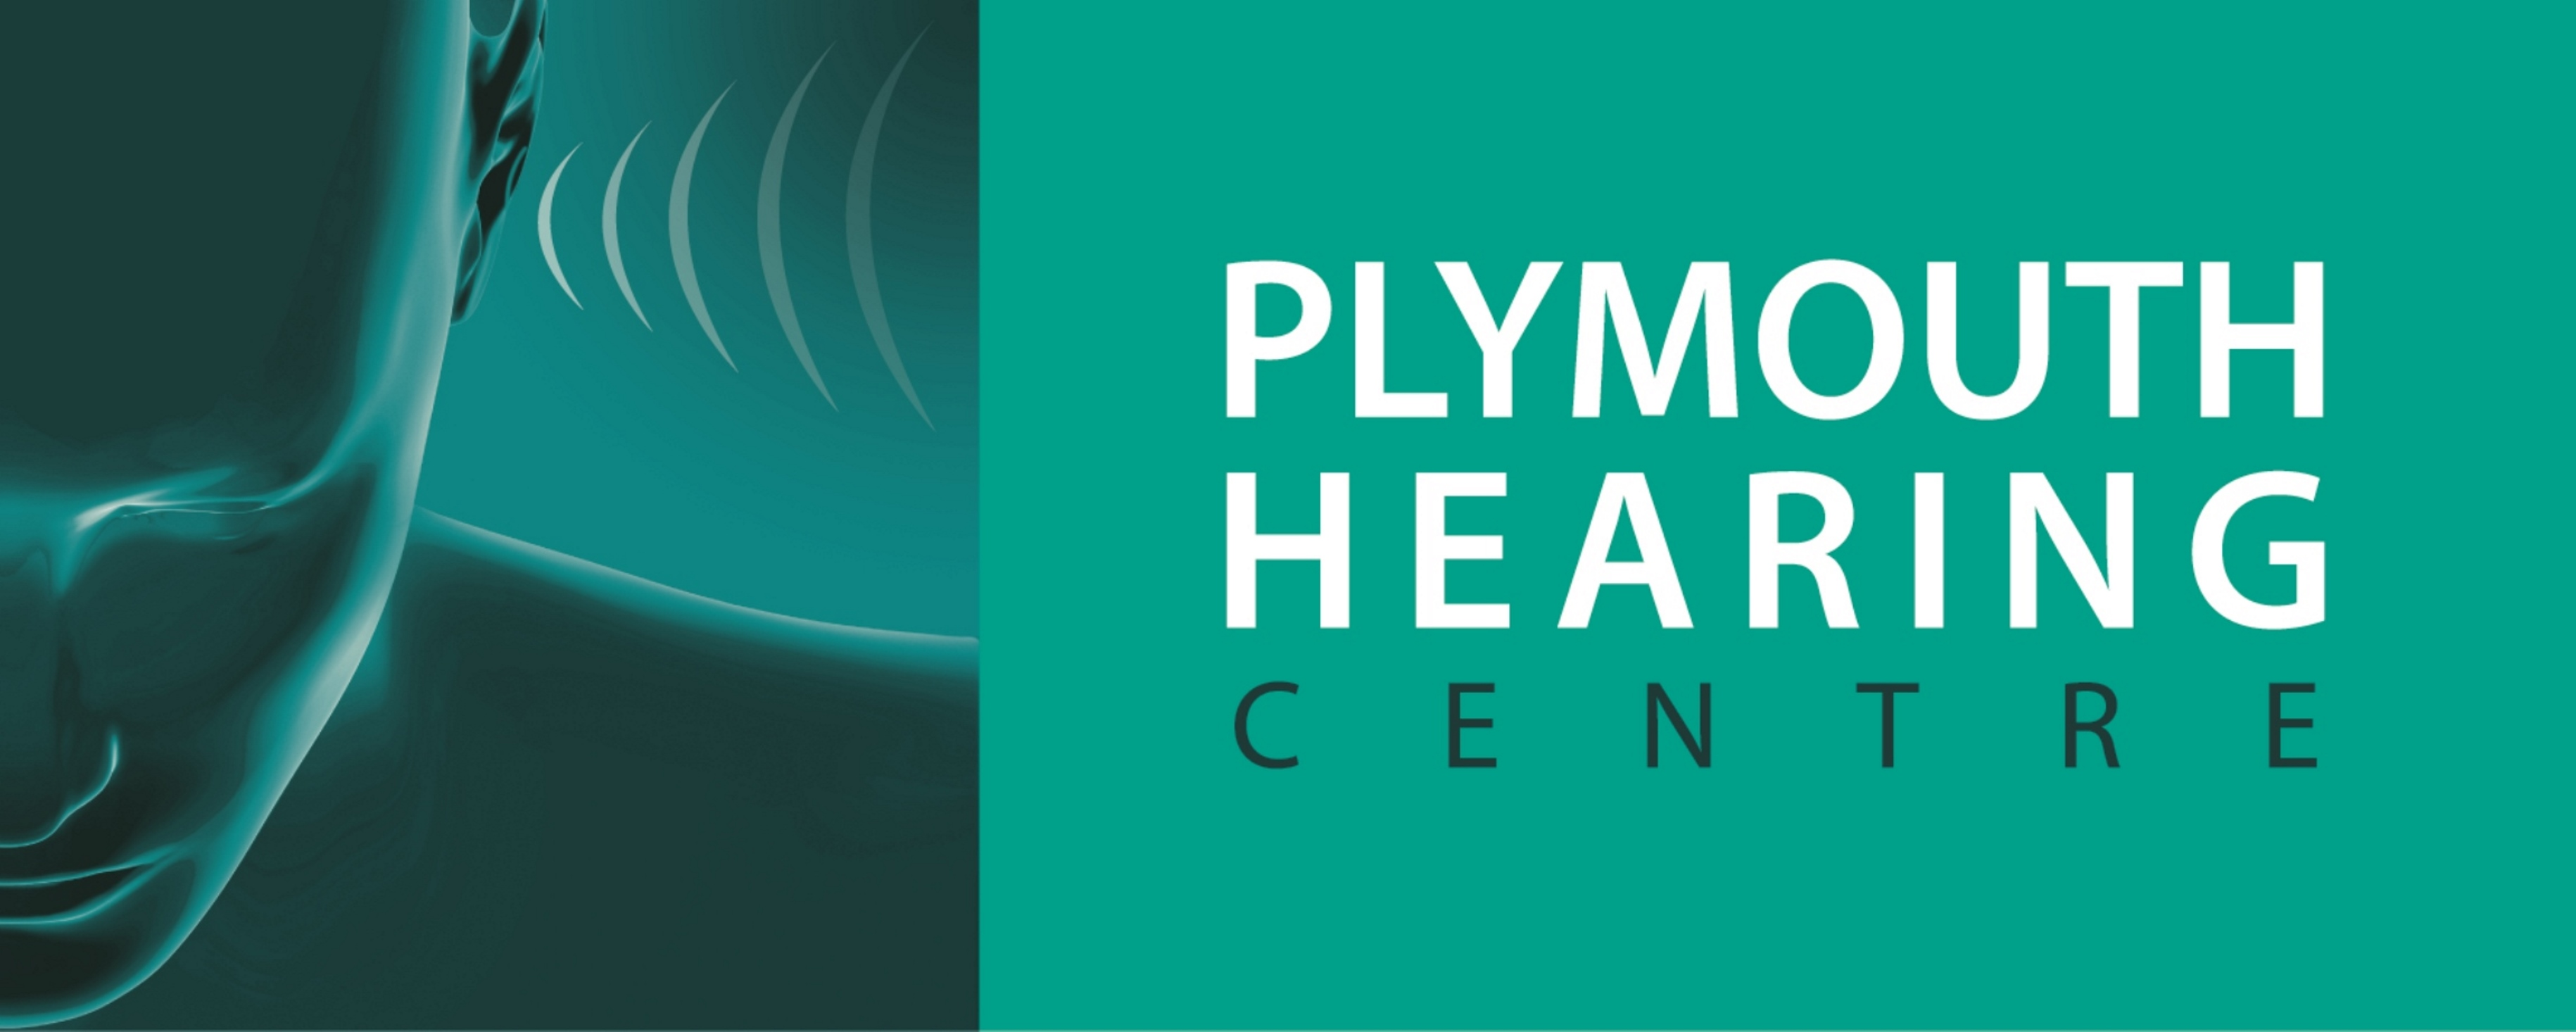 Read Plymouth Hearing Centre Ltd Reviews